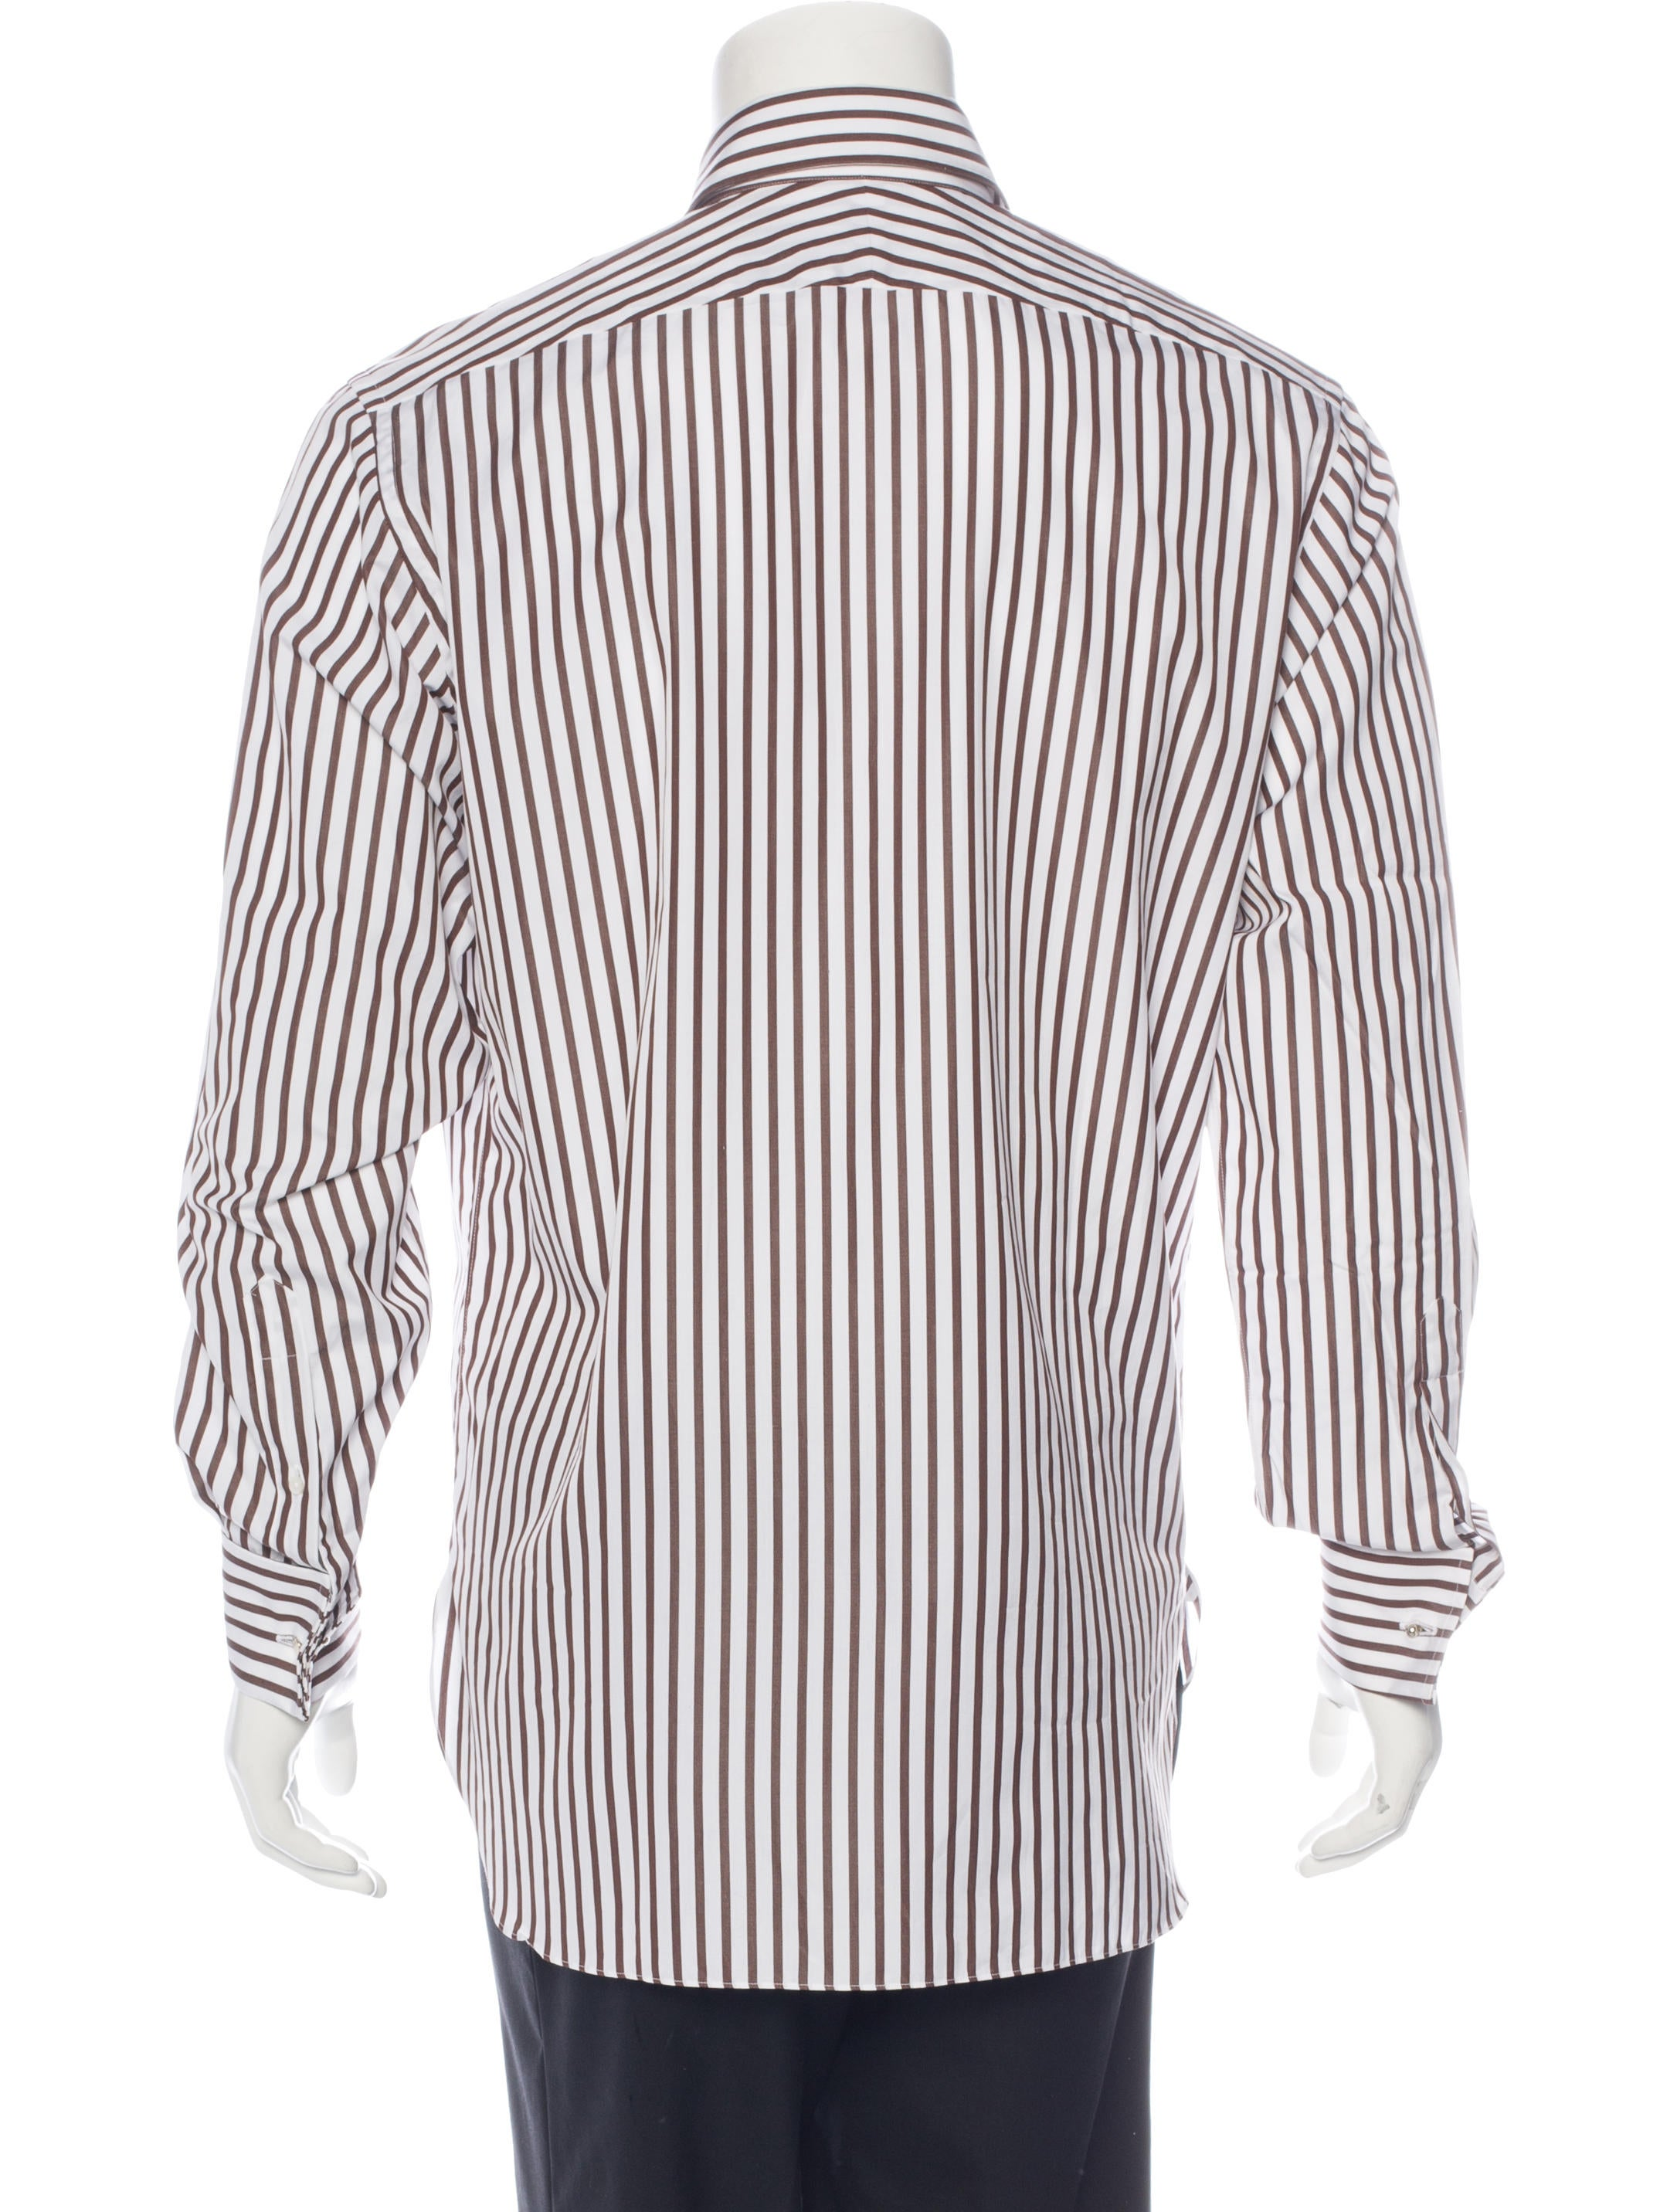 ralph auriemma striped french cuff shirt w tags. Black Bedroom Furniture Sets. Home Design Ideas